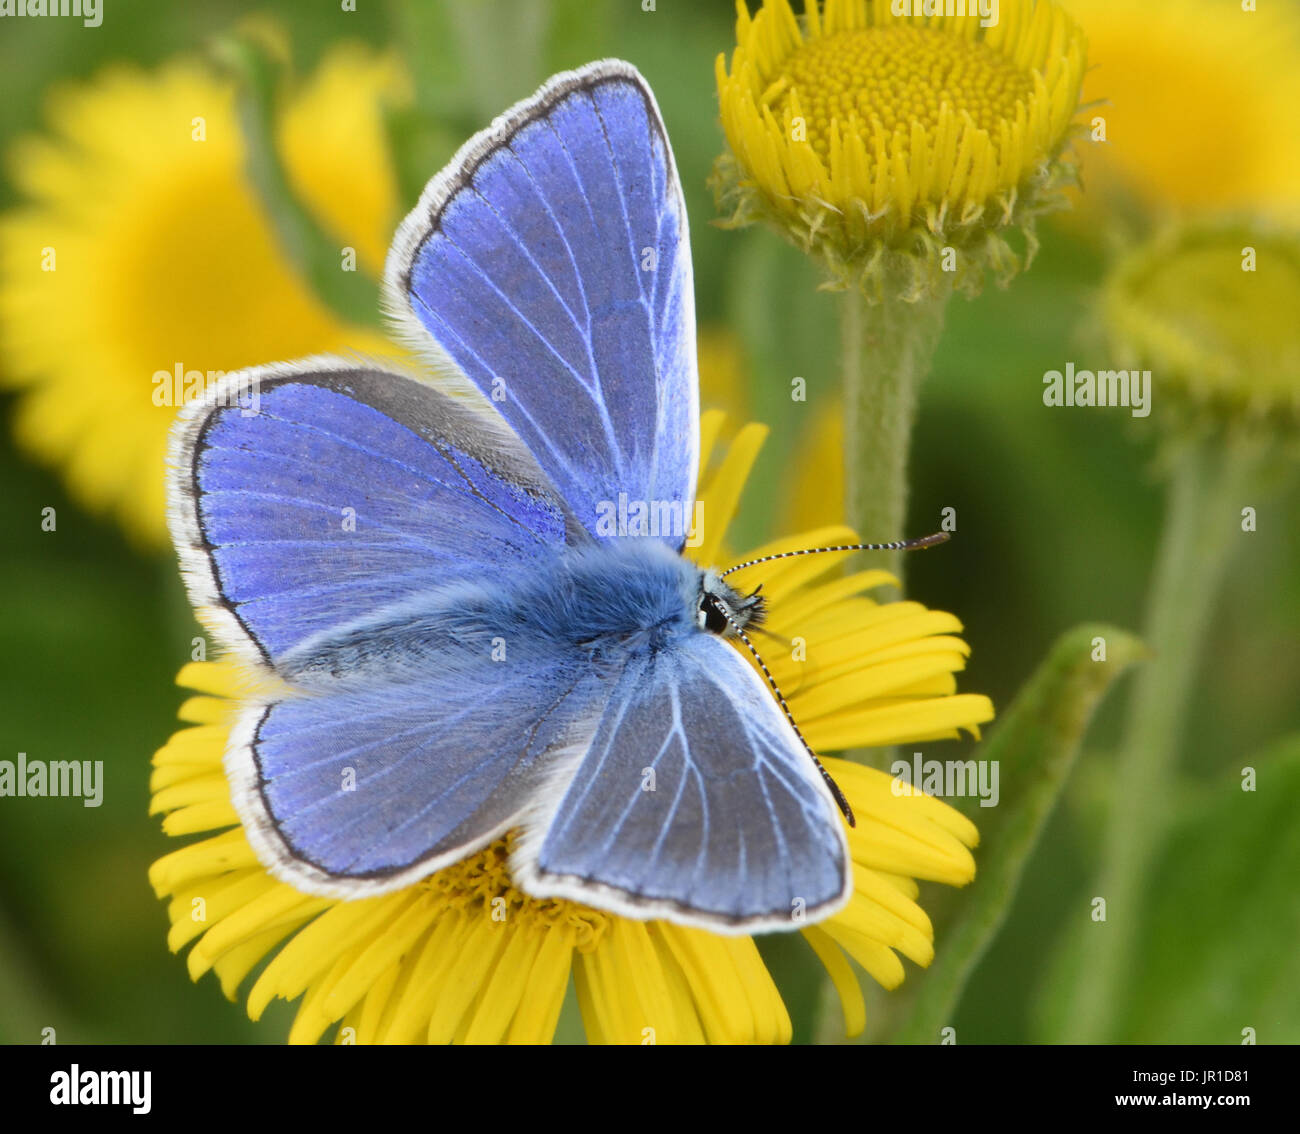 A male common blue butterfly (Polyommatus icarus) feeding with wings open on a Common Fleabane (Pulicaria dysenterica) flower. - Stock Image